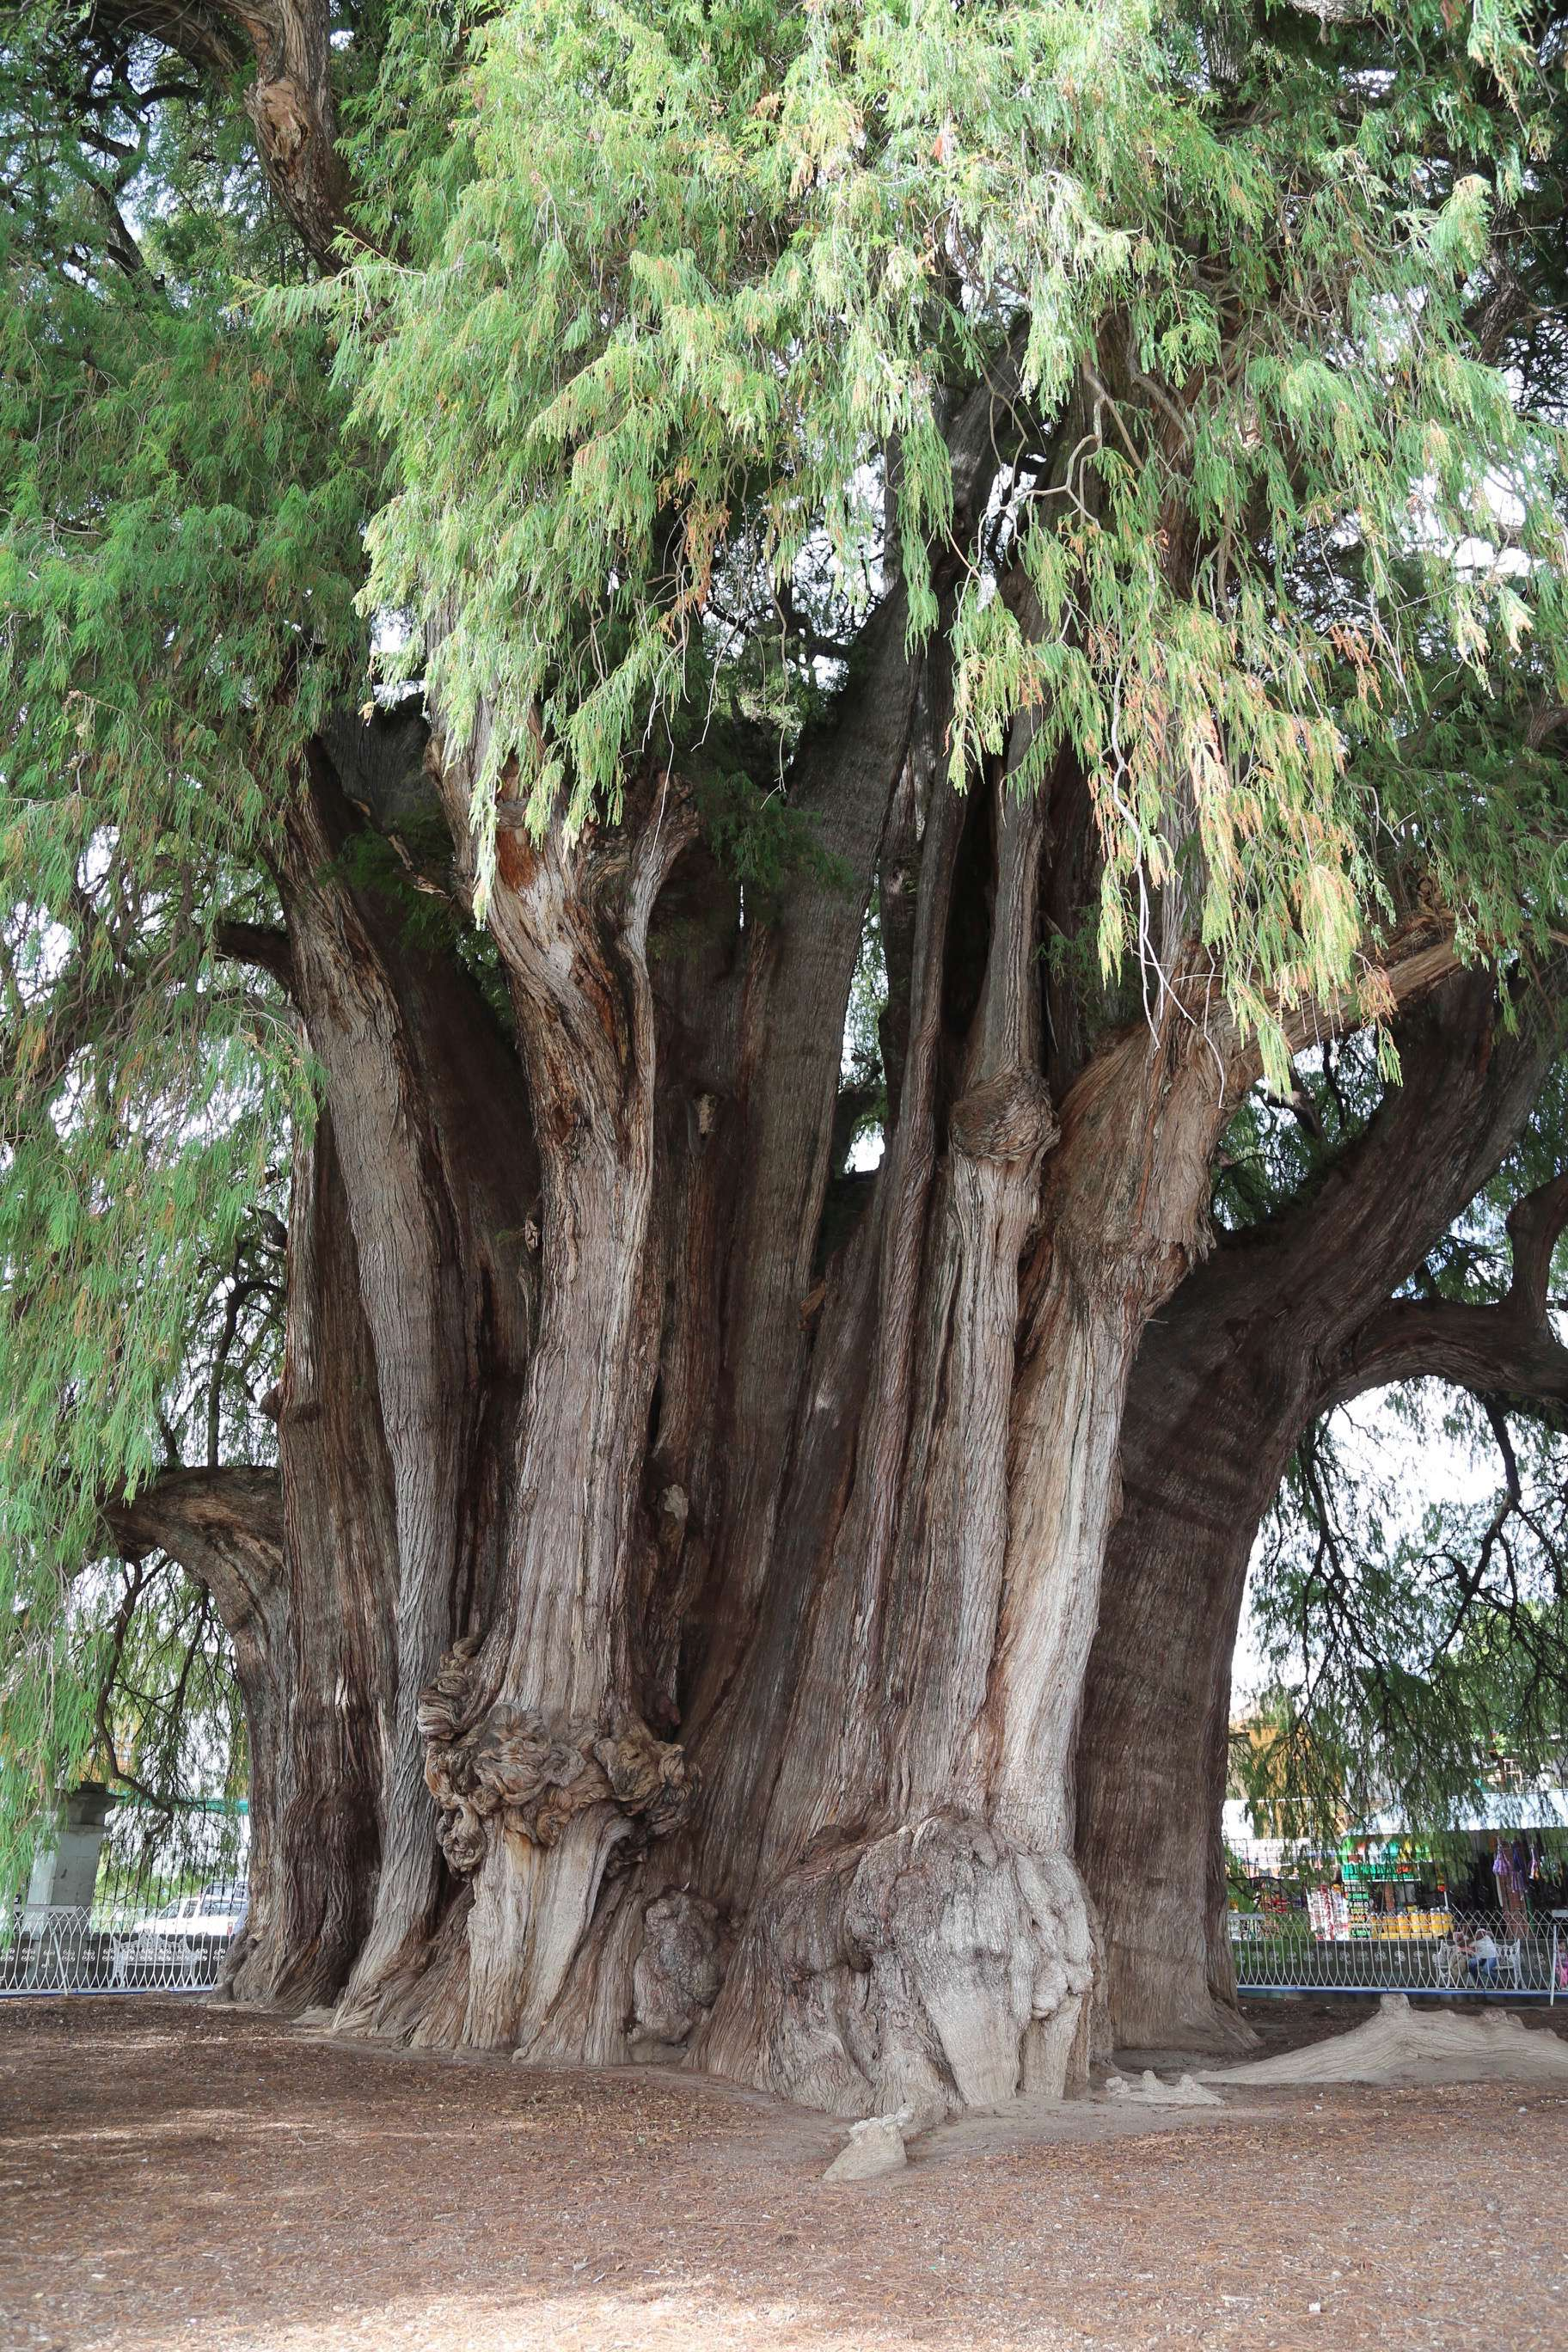 One can spend hours studying and appreciating the massive trunk of El Tule.